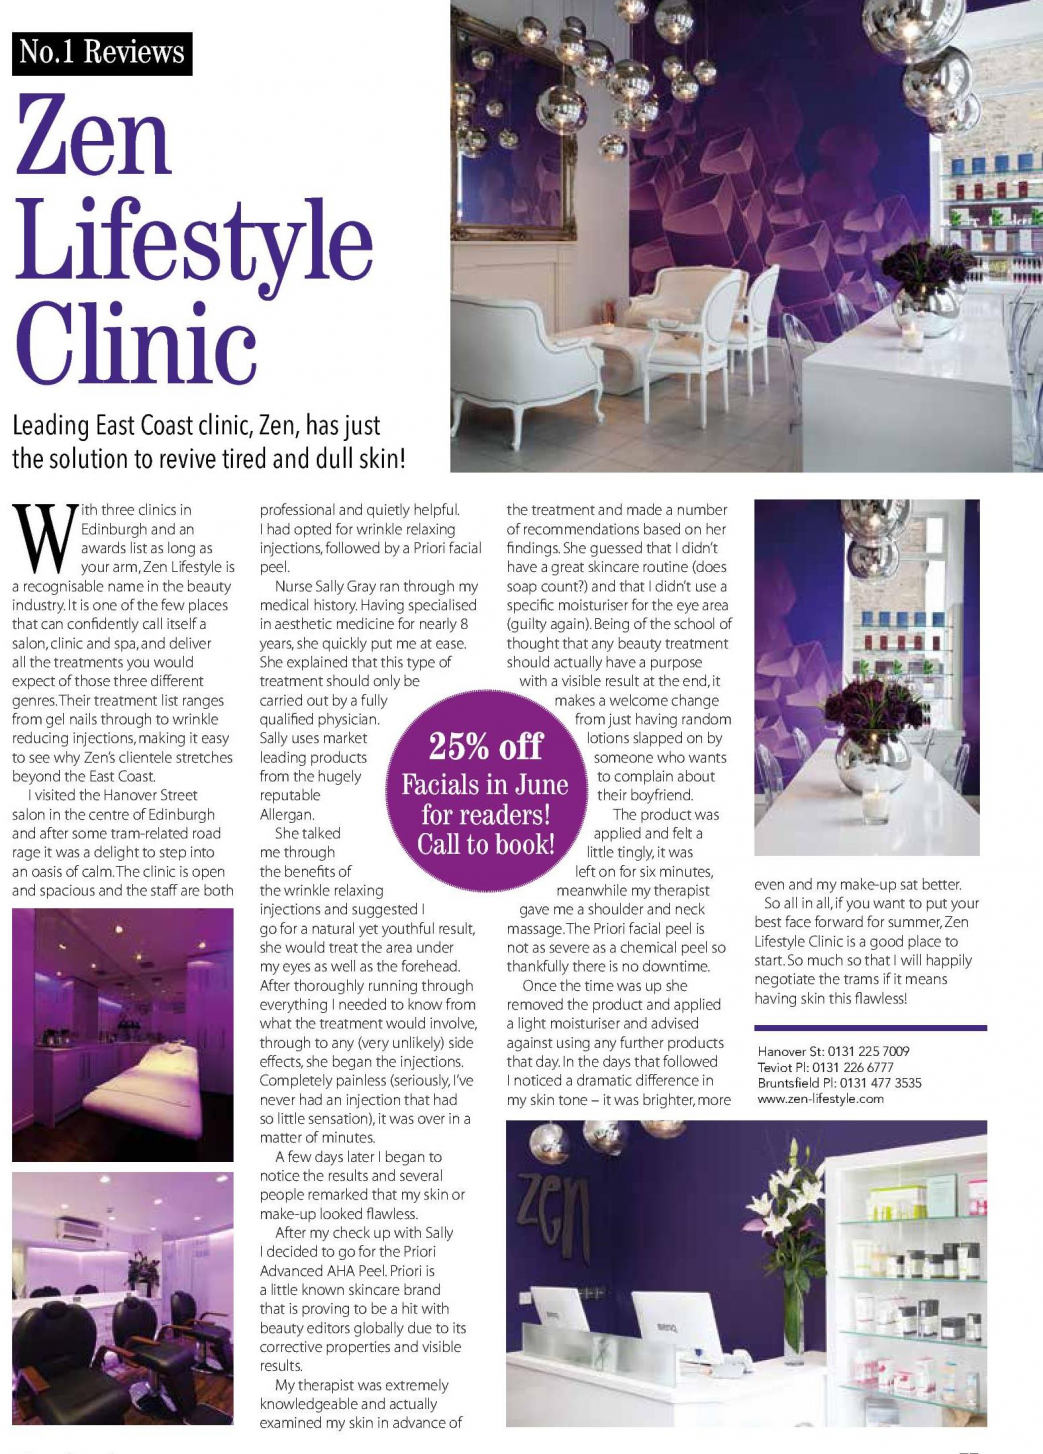 No 1 Magazine reviews our Skin Clinic - Zen Lifestyle